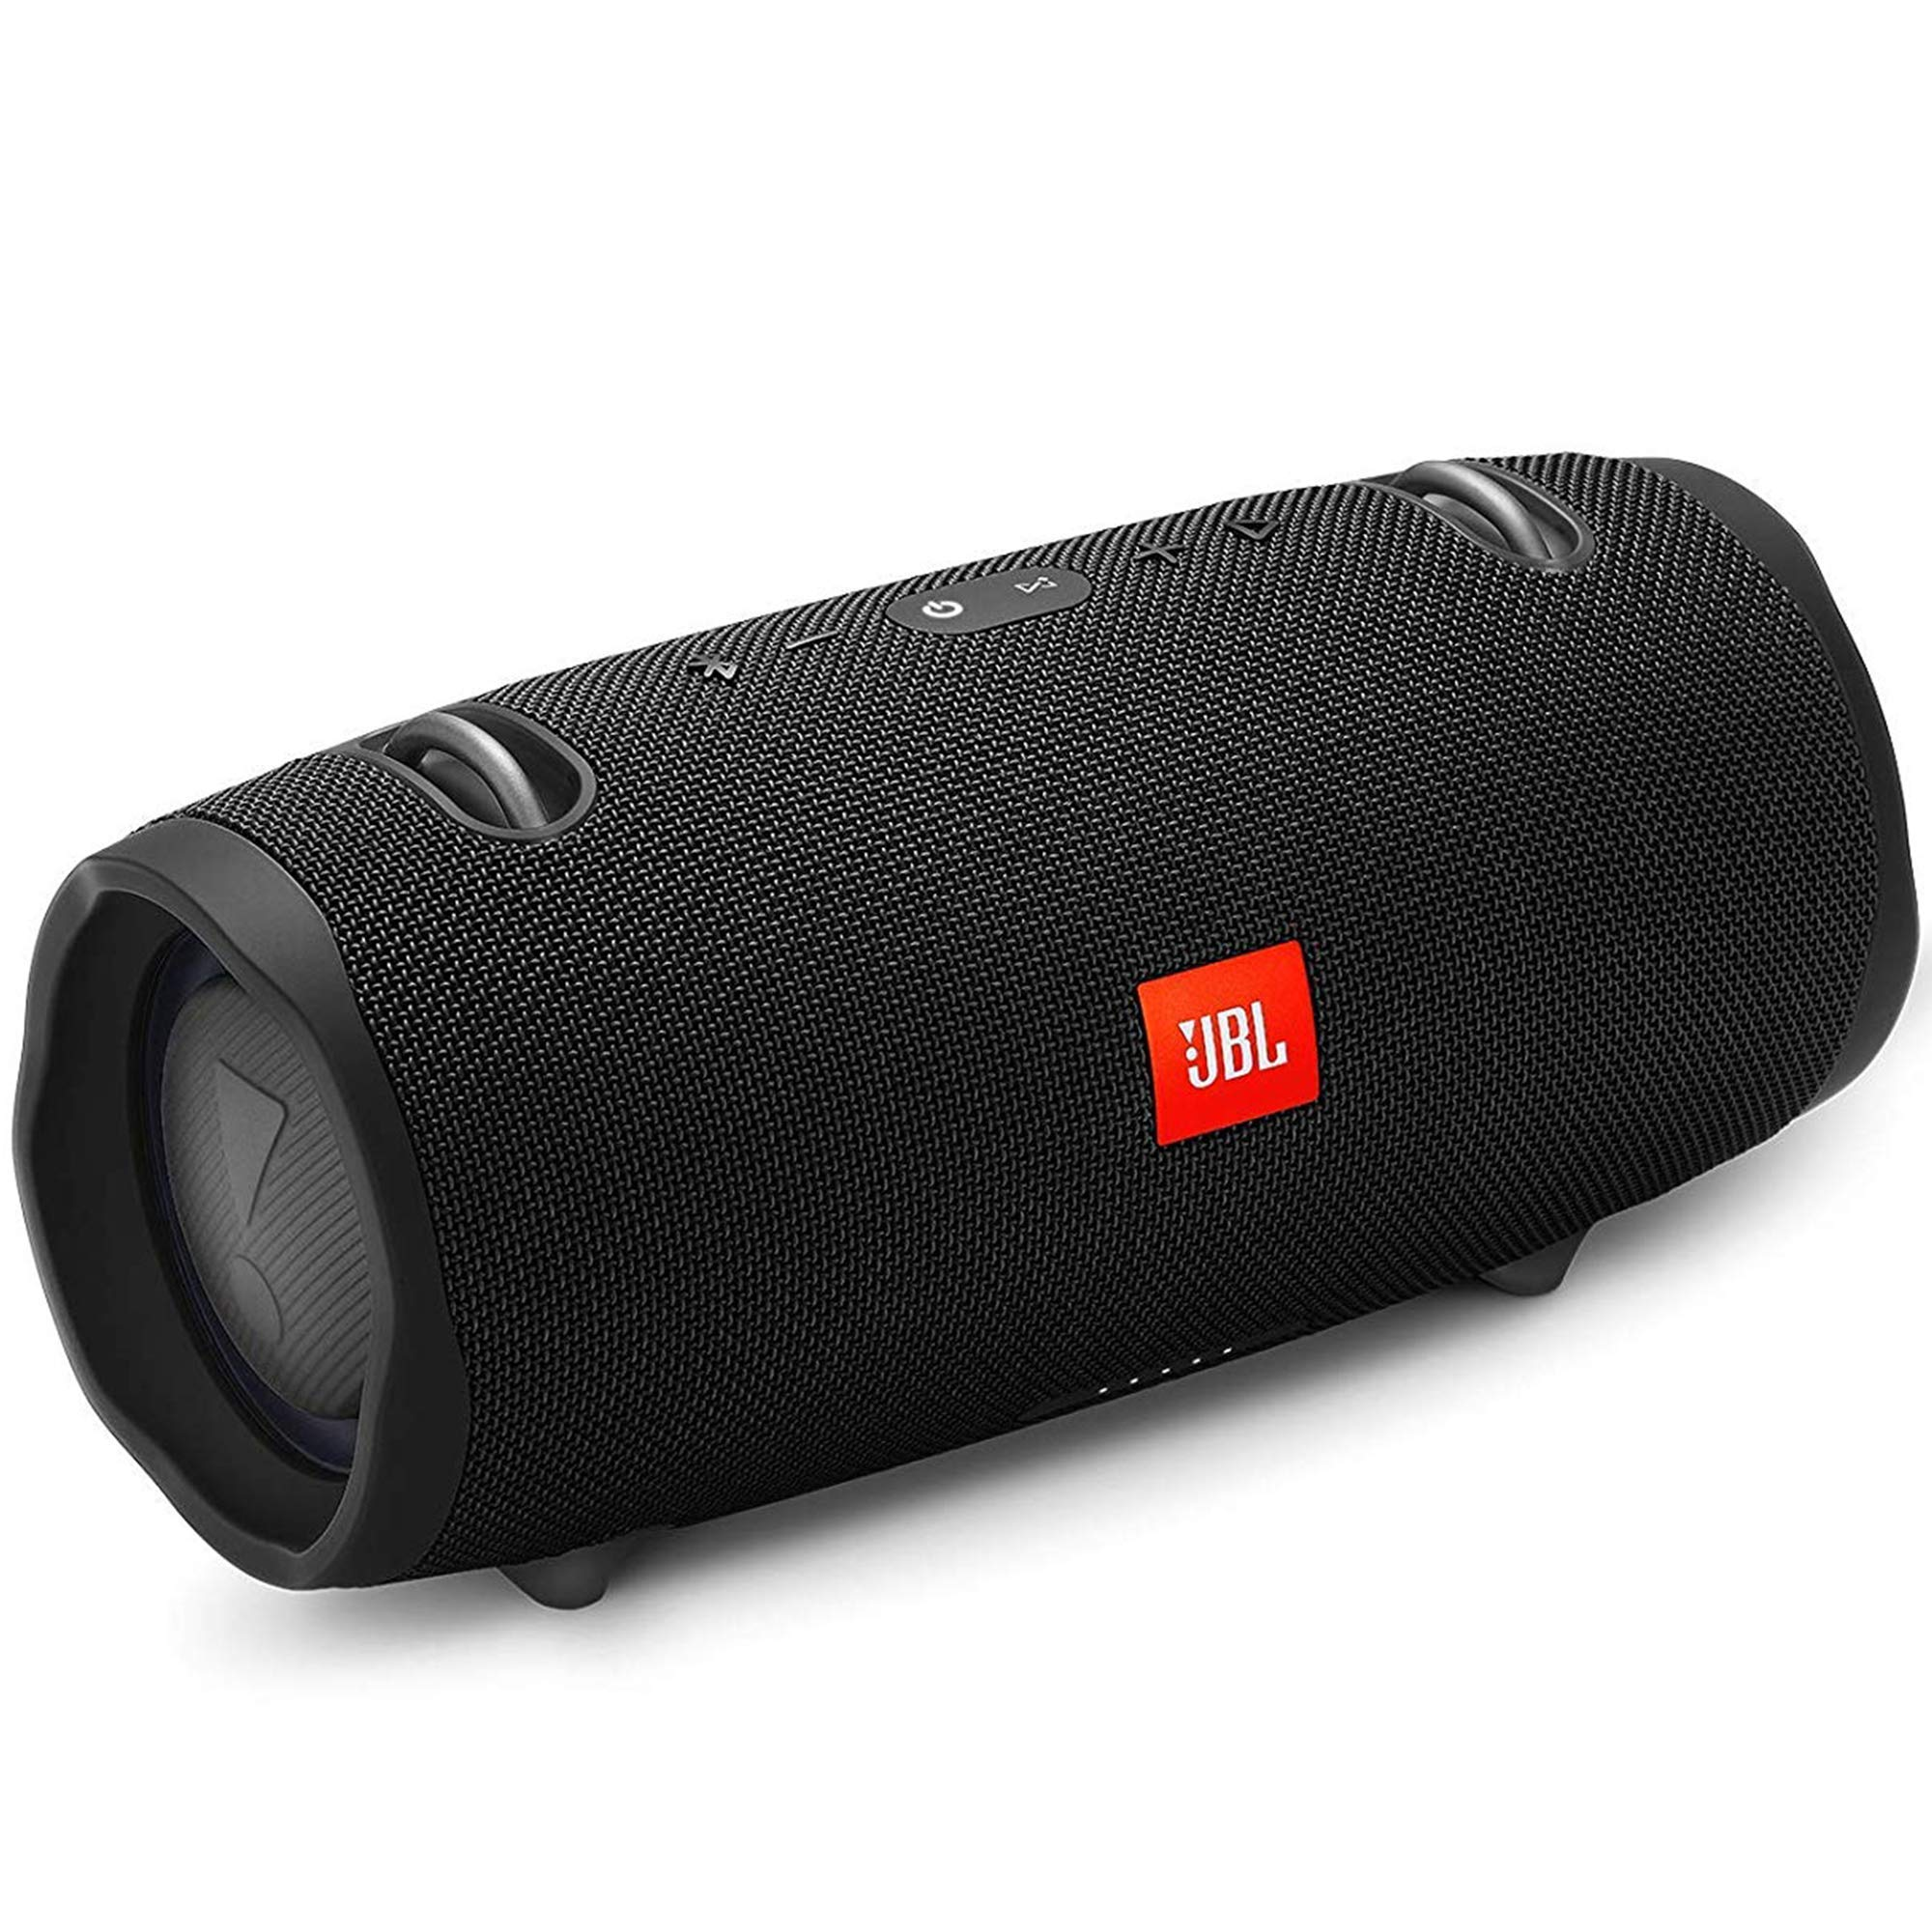 JBL Xtreme 2 Portable Waterproof Wireless Bluetooth Speaker - Black (Renewed) by JBL